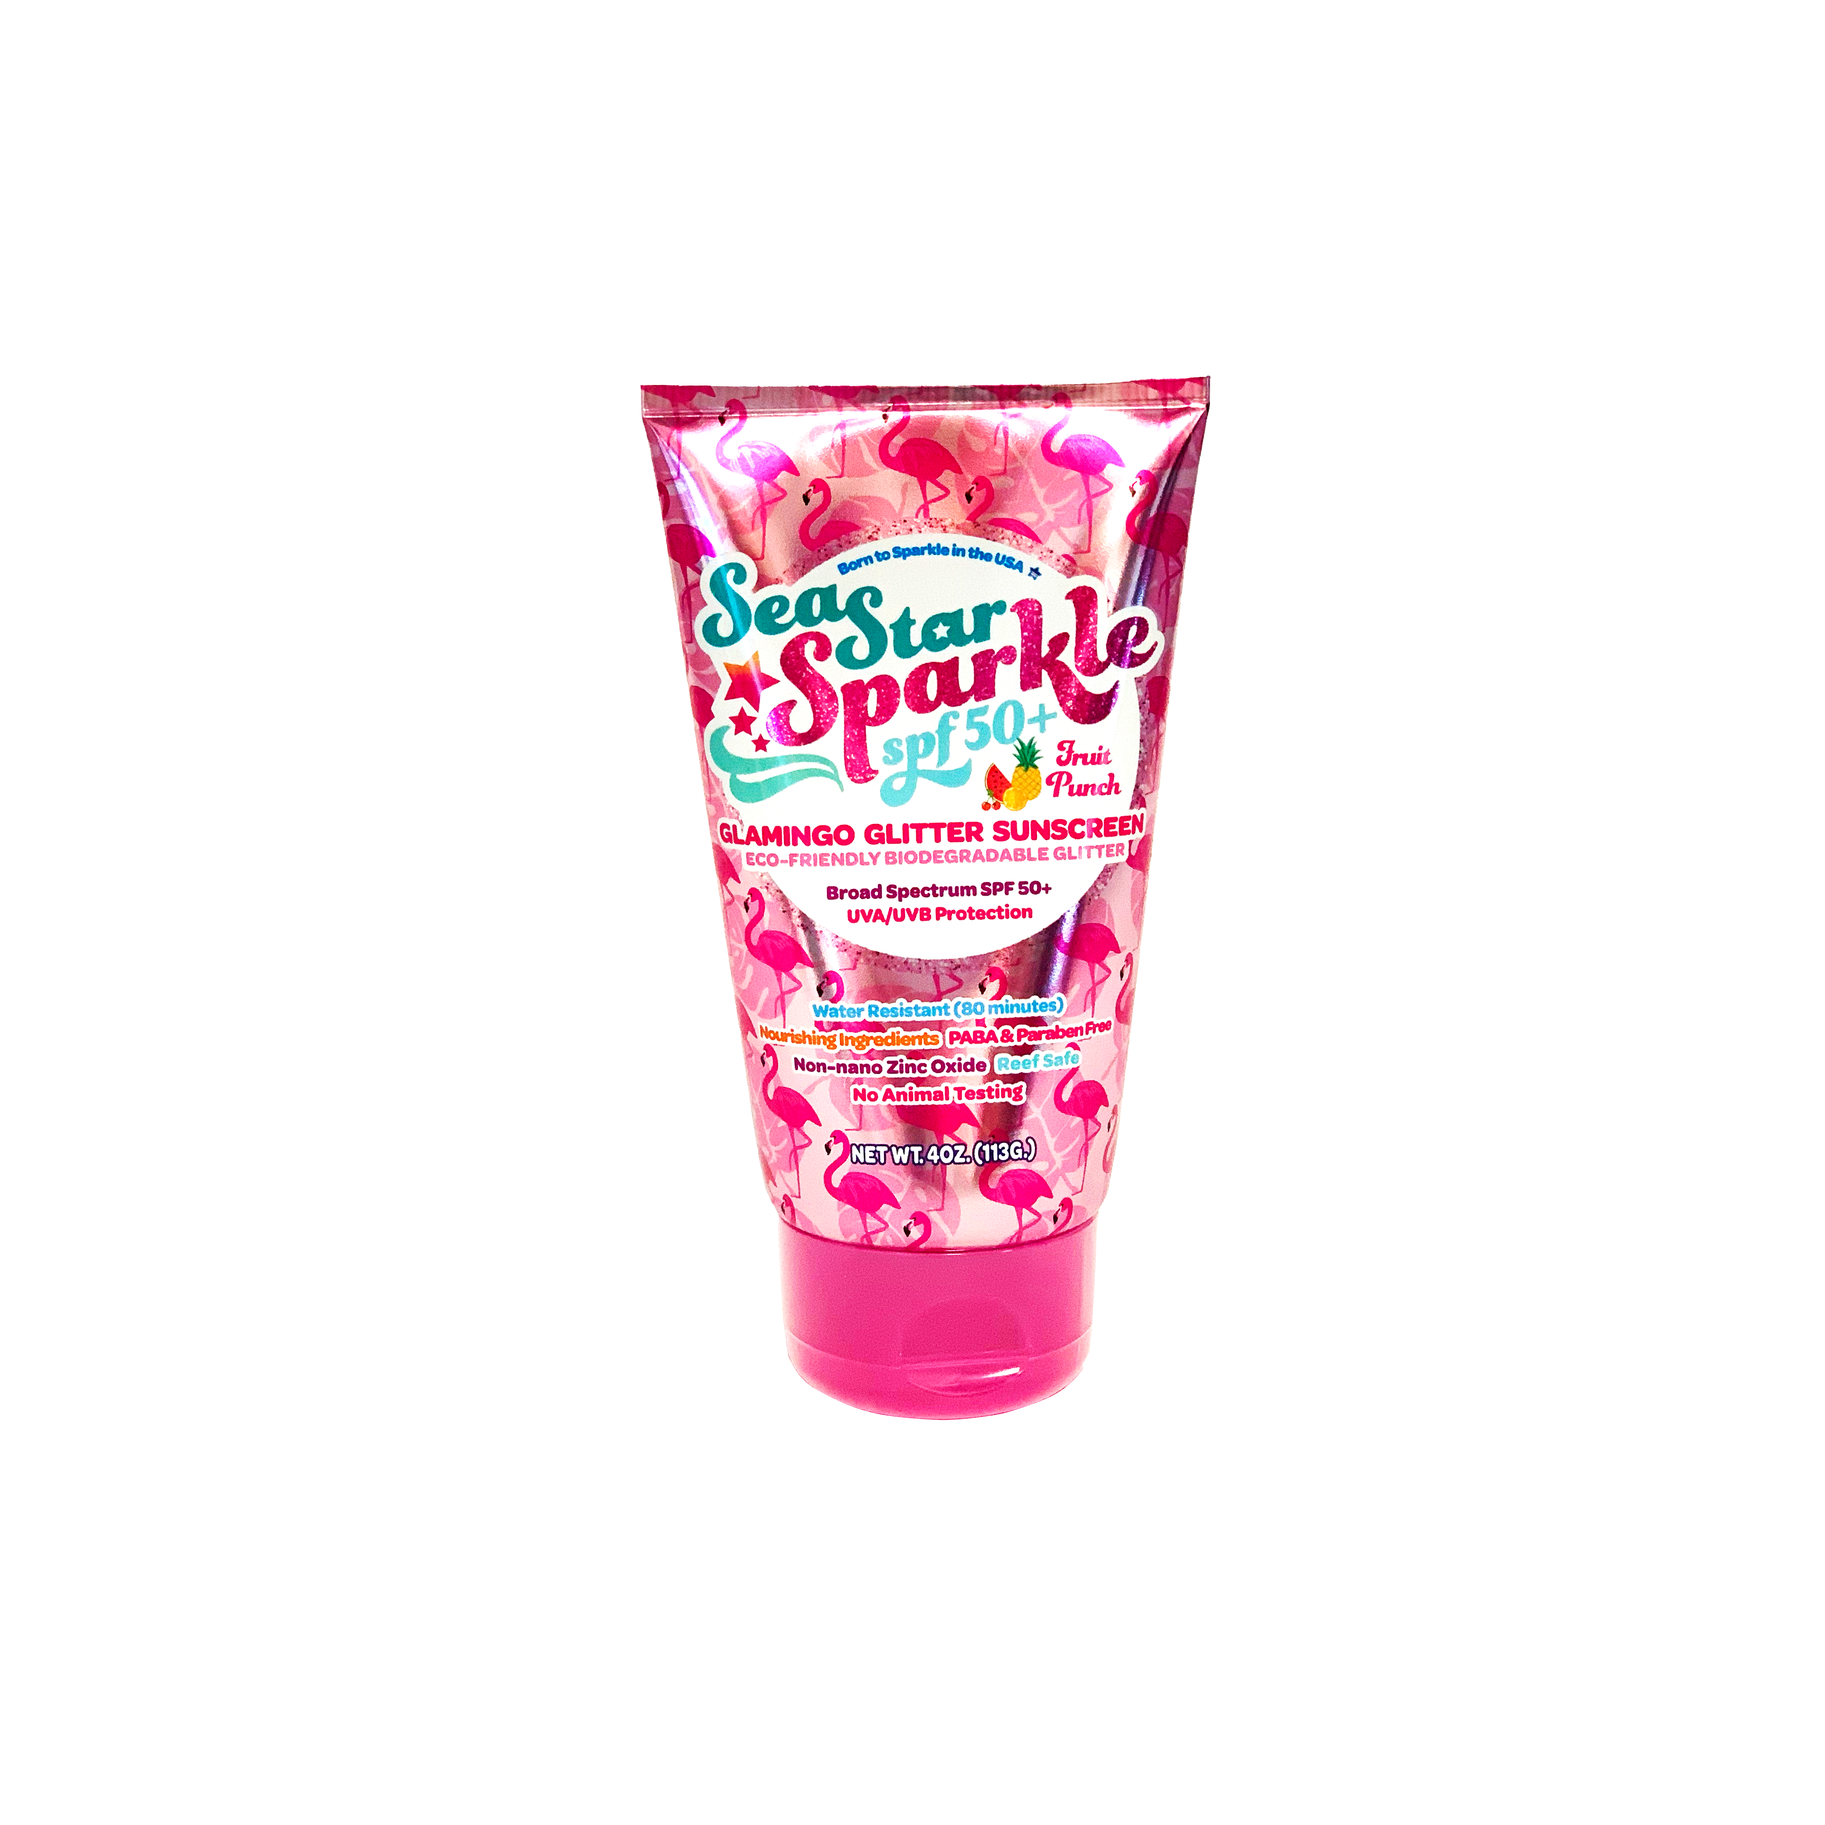 Sea Star Sparkle Sunscreen - Fruit Punch Glamingo Glitter